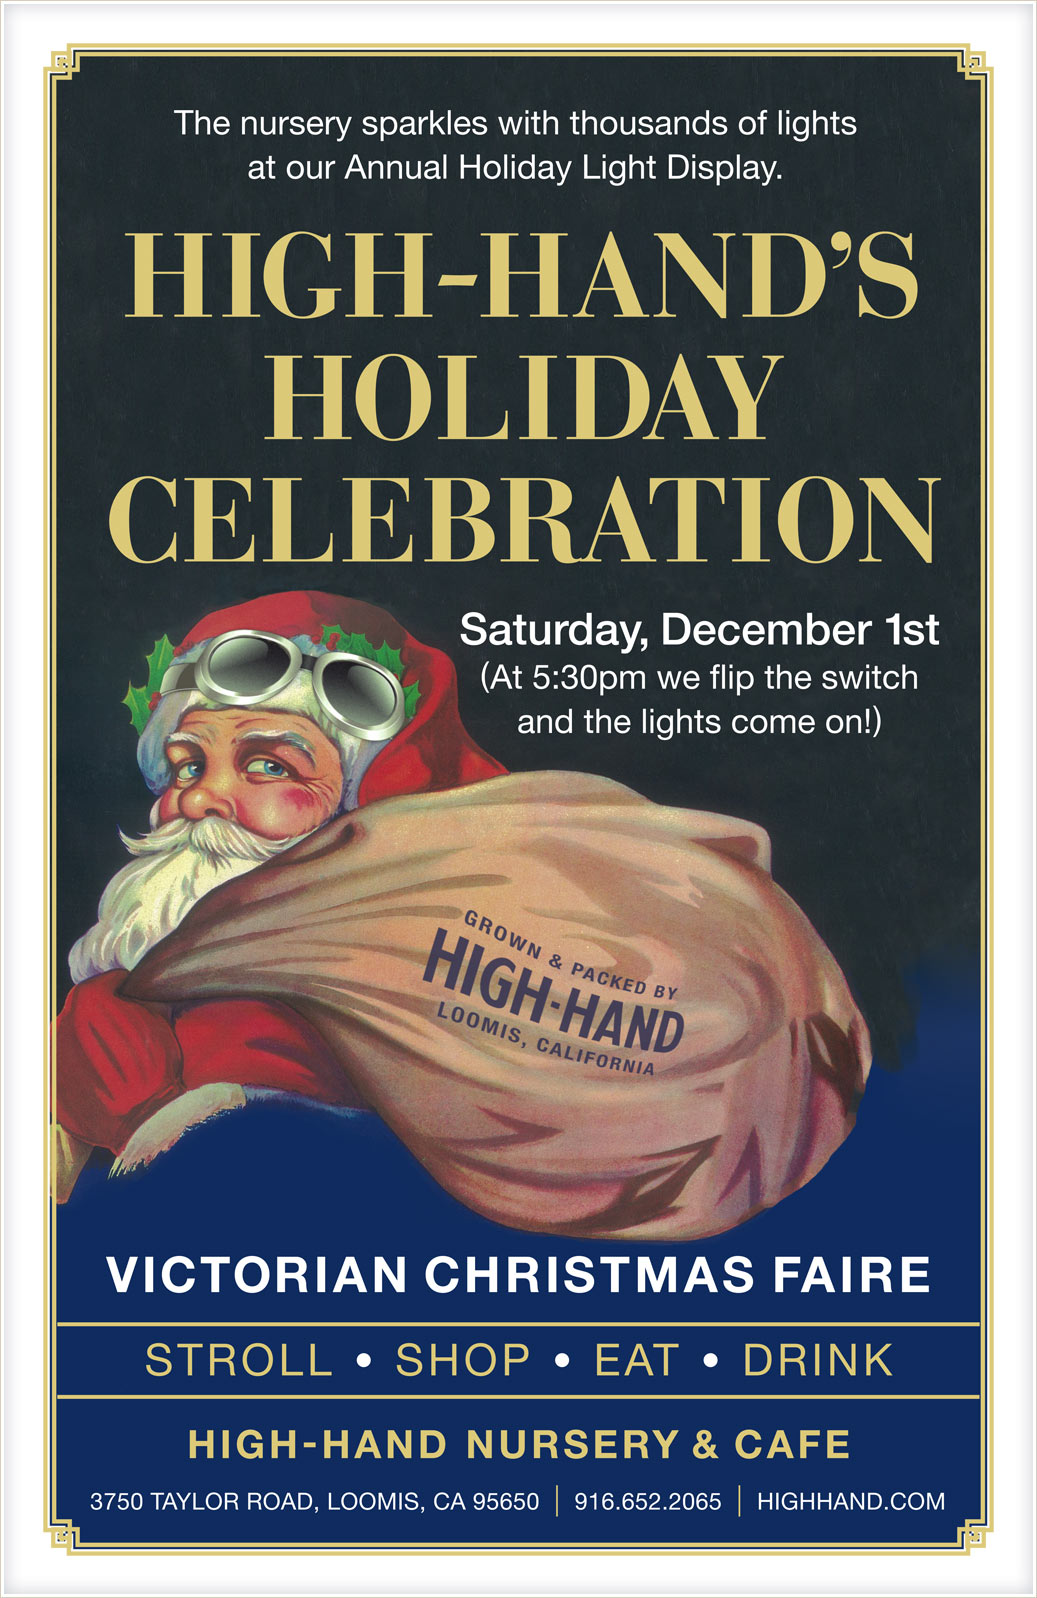 image of the holiday poster